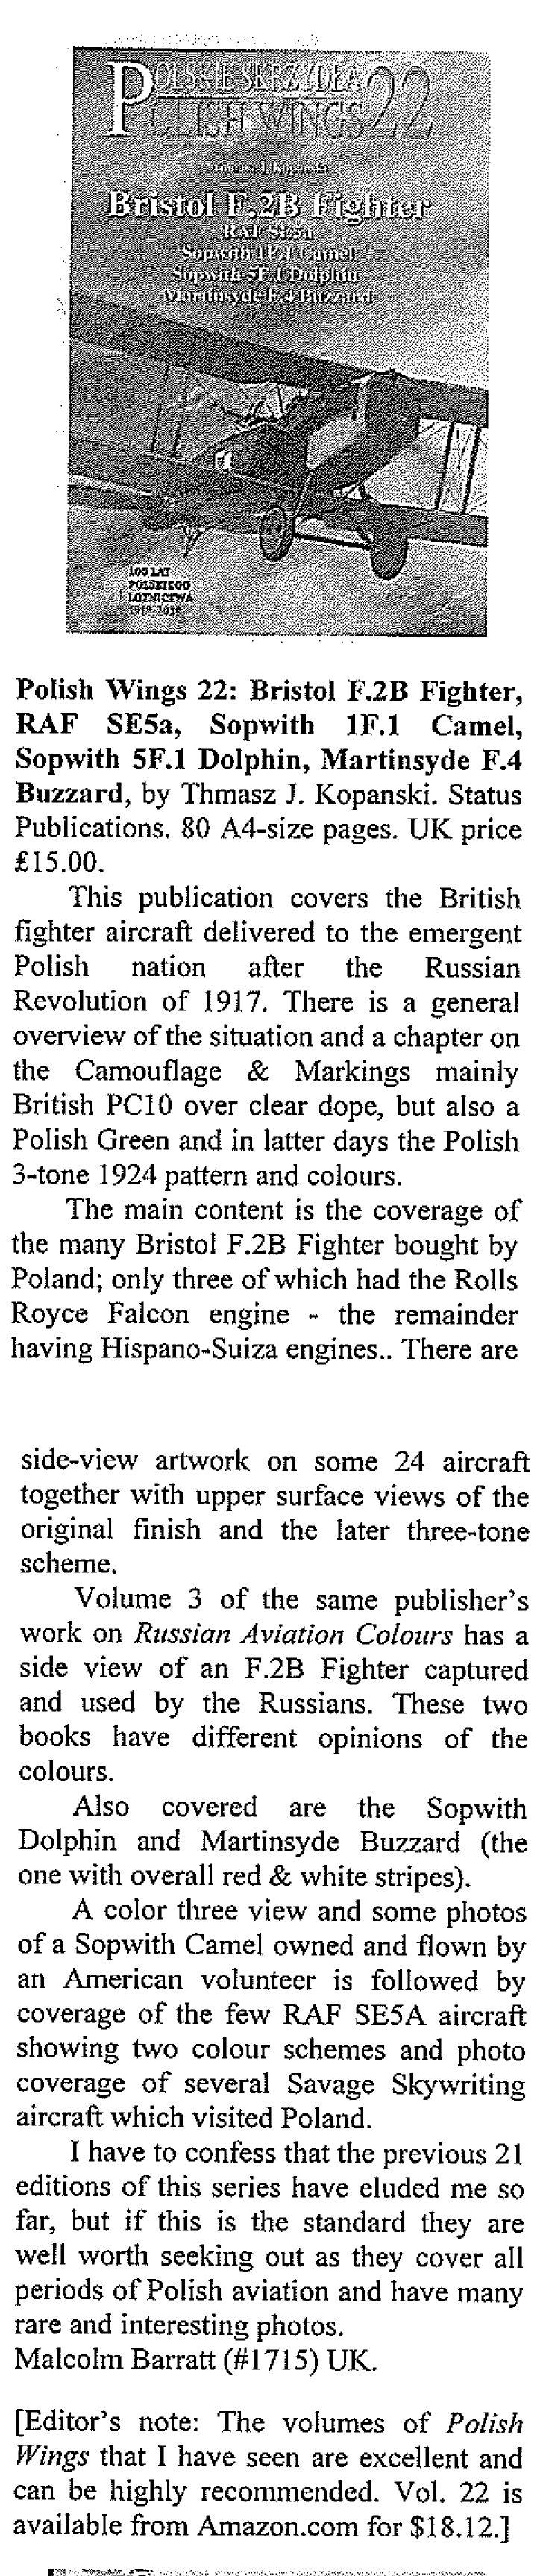 Small Air Forces Observer January 2018 2 PW 22